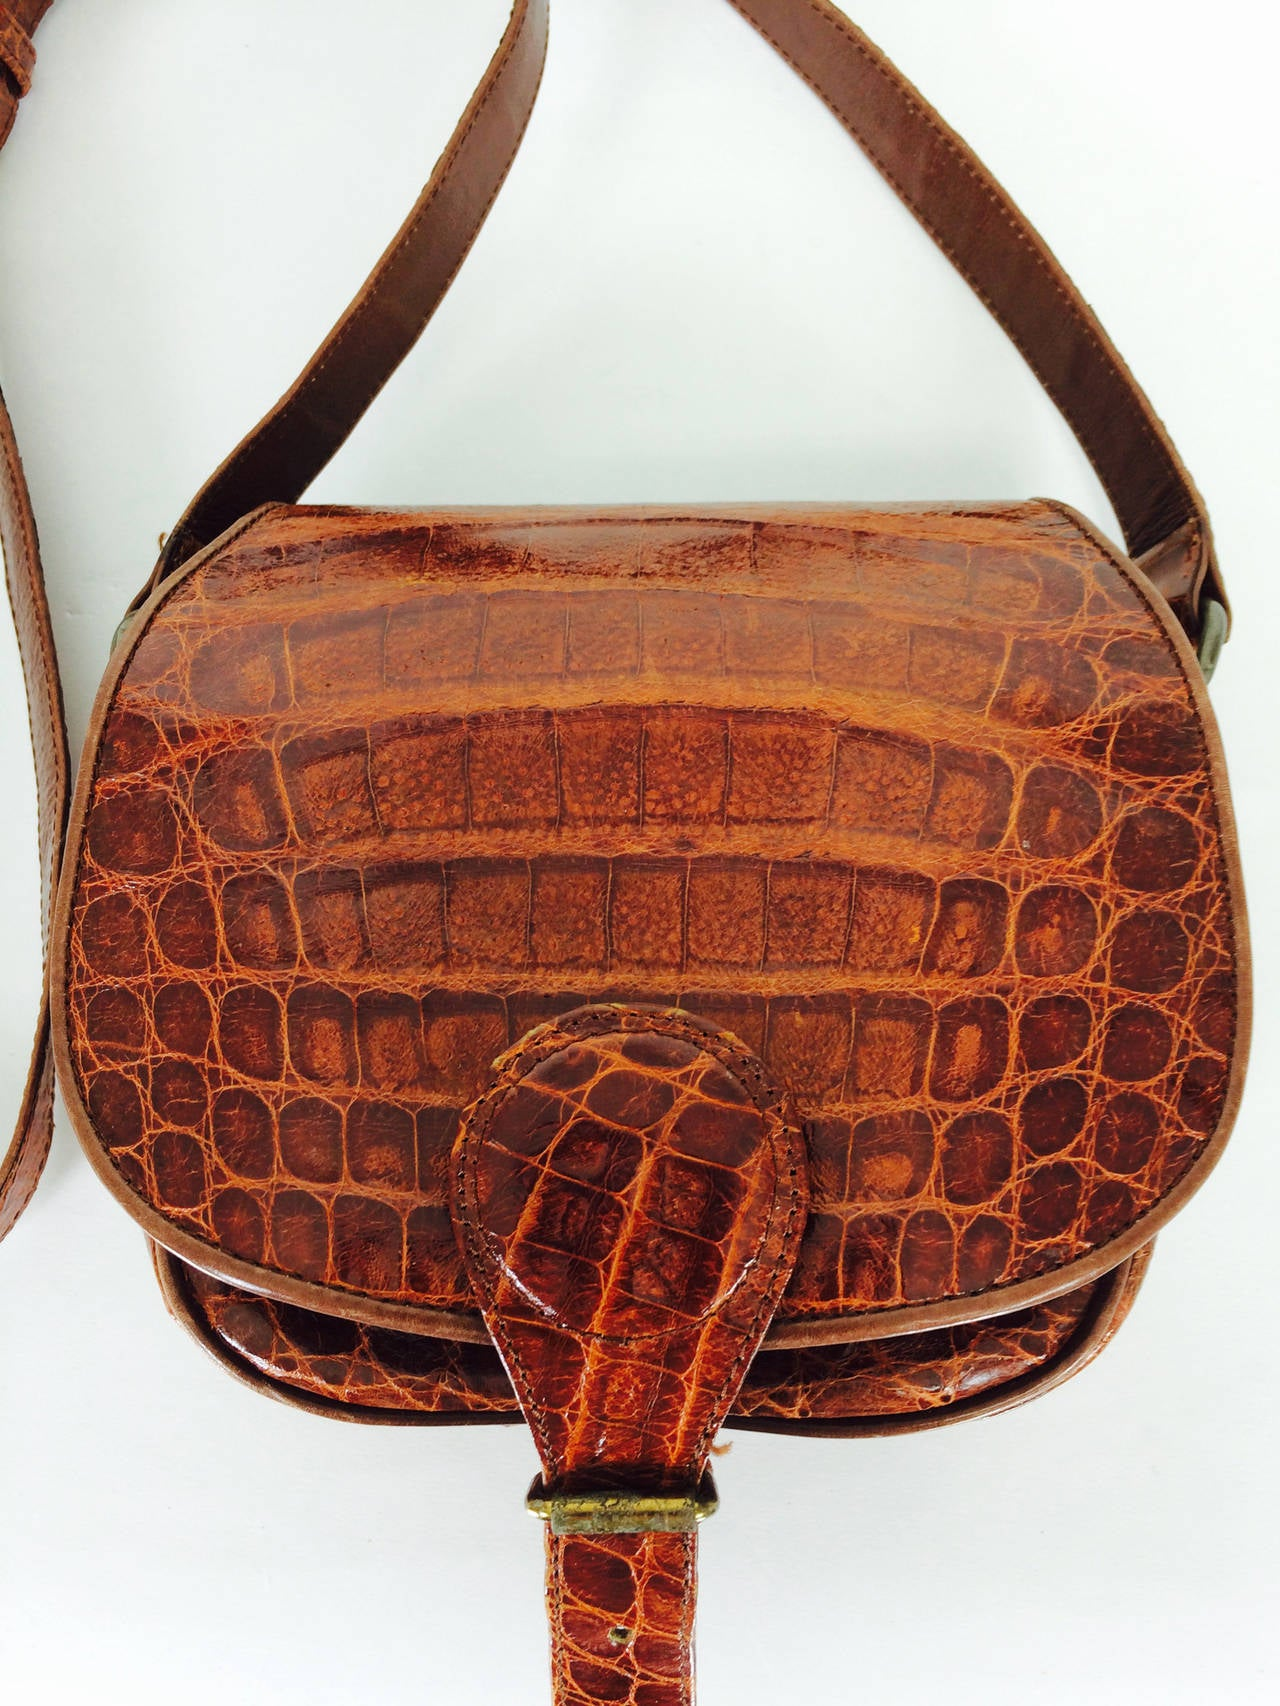 Saddle bag handbag cognac leather faux alligator Neiman Marcus 1980s 2